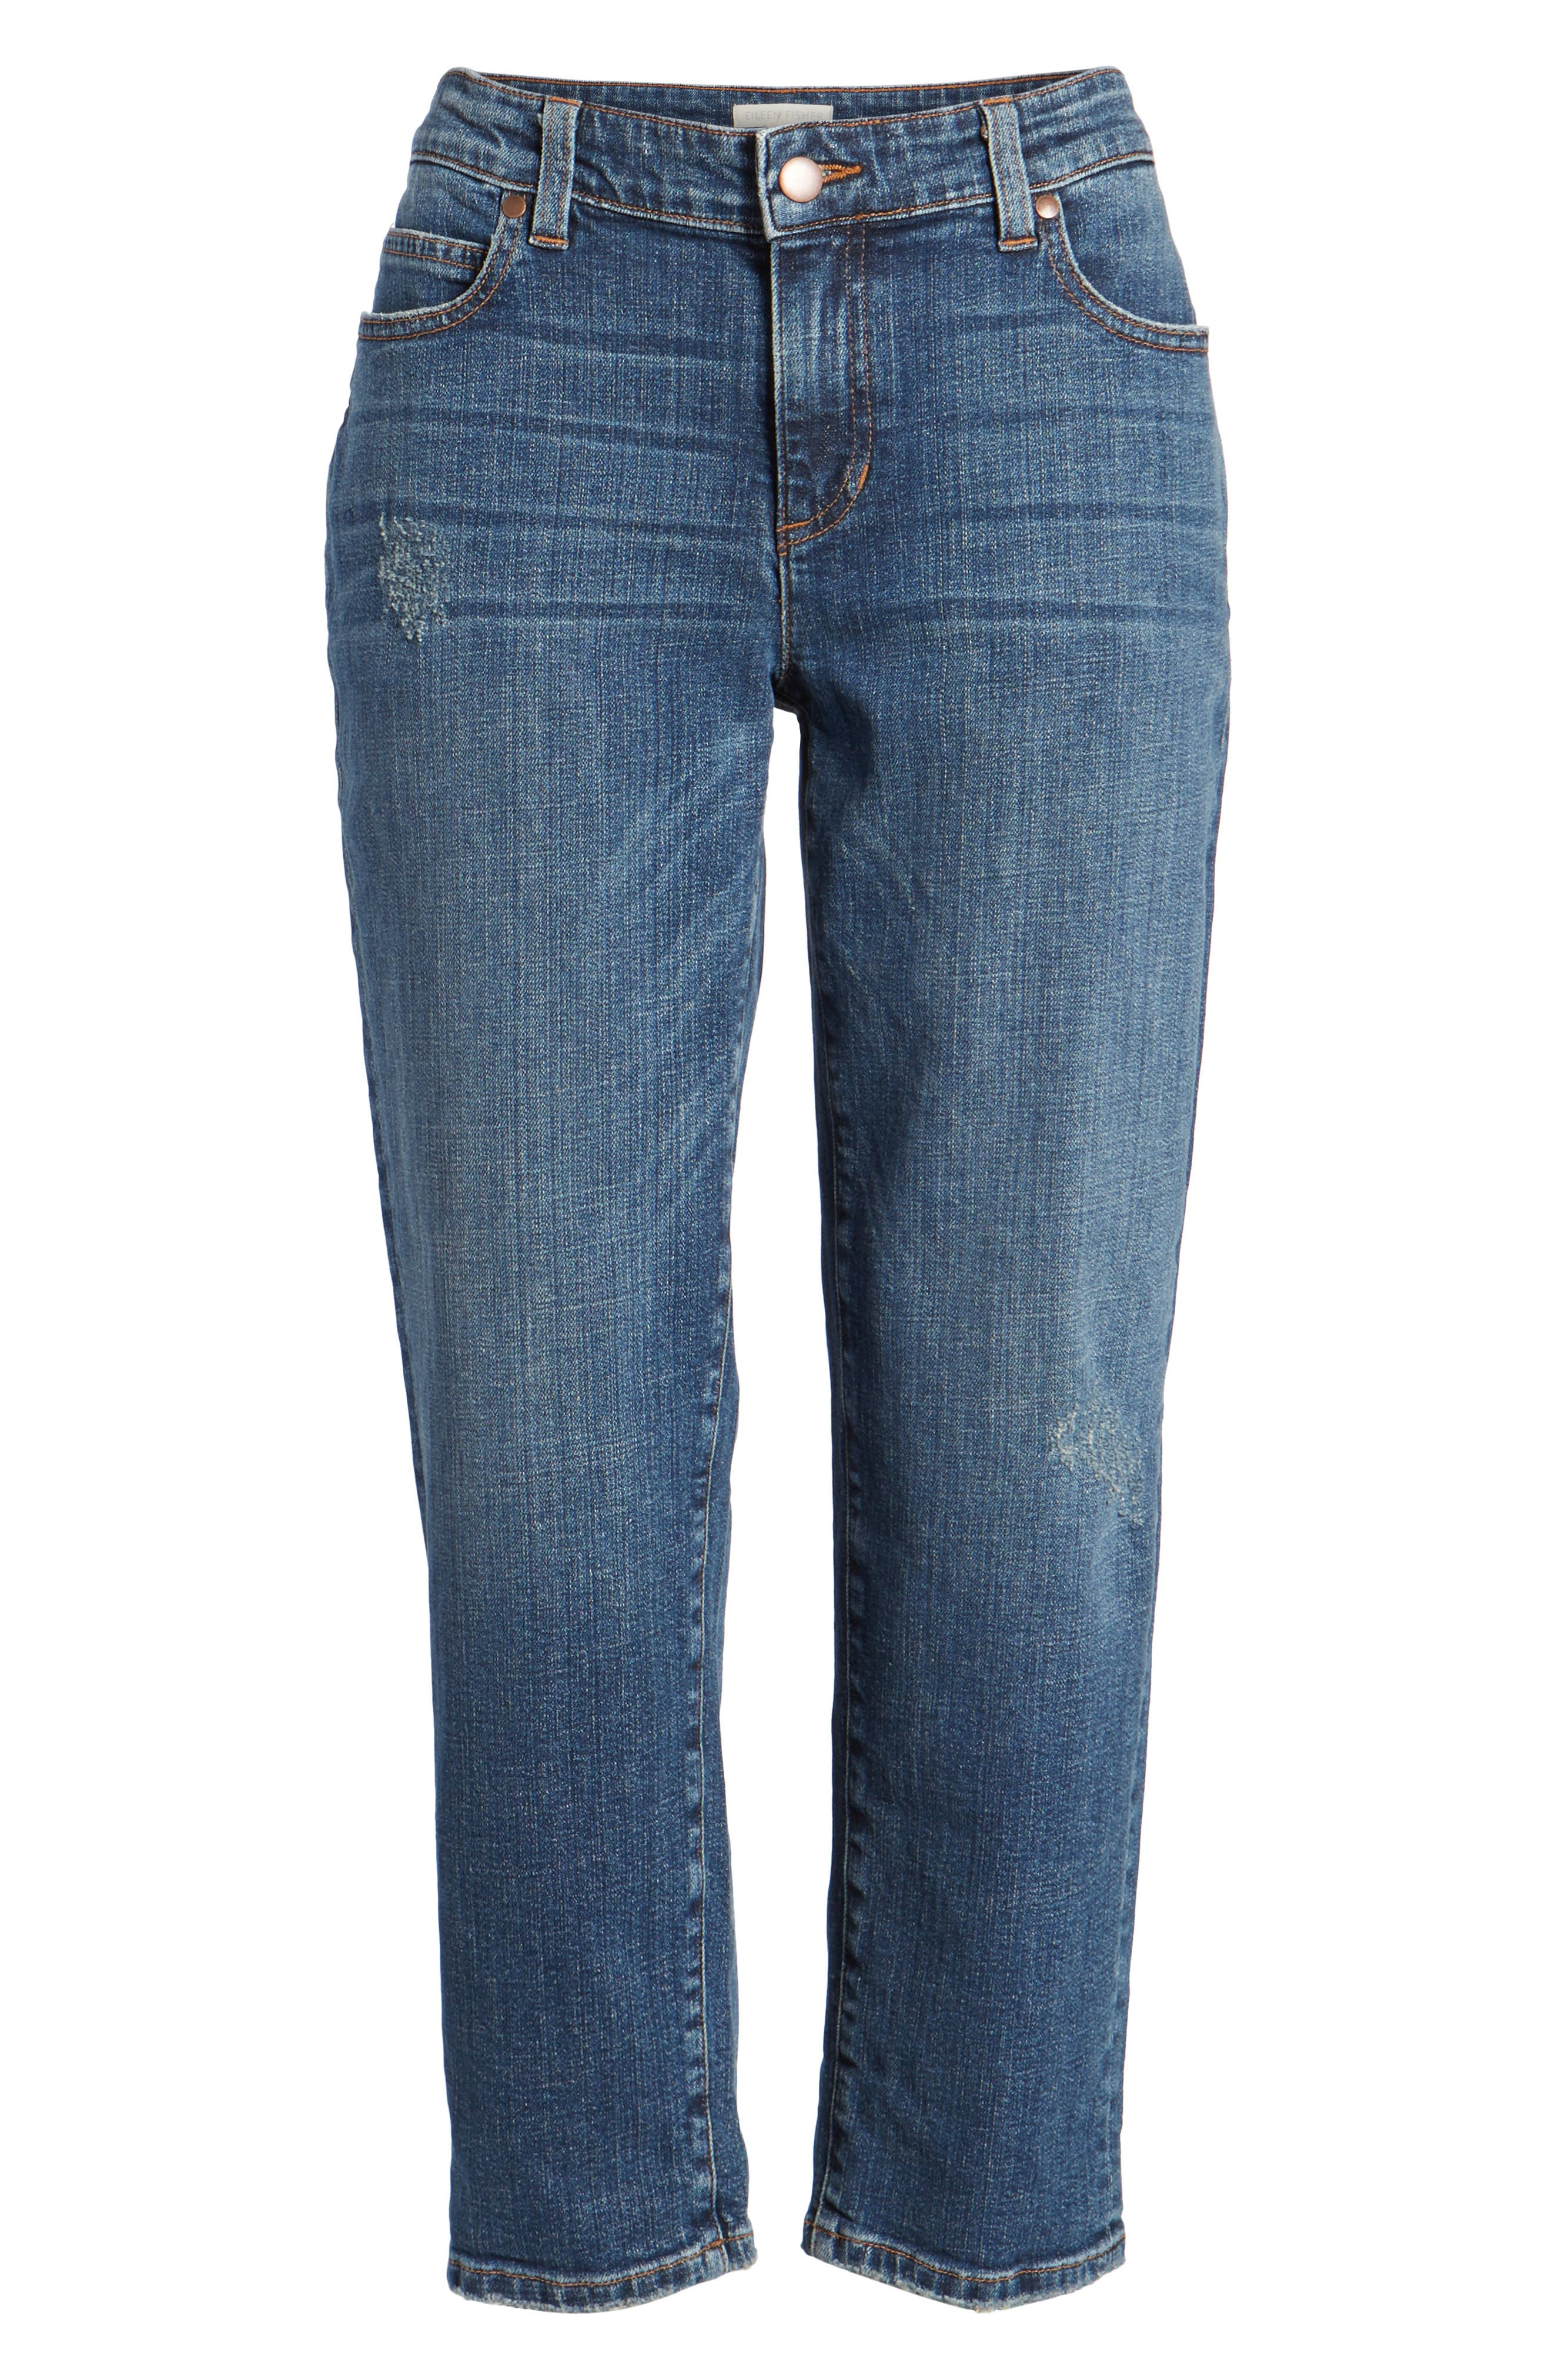 Tapered Stretch Organic Cotton Crop Jeans,                             Alternate thumbnail 7, color,                             Abraded Aged Indigo